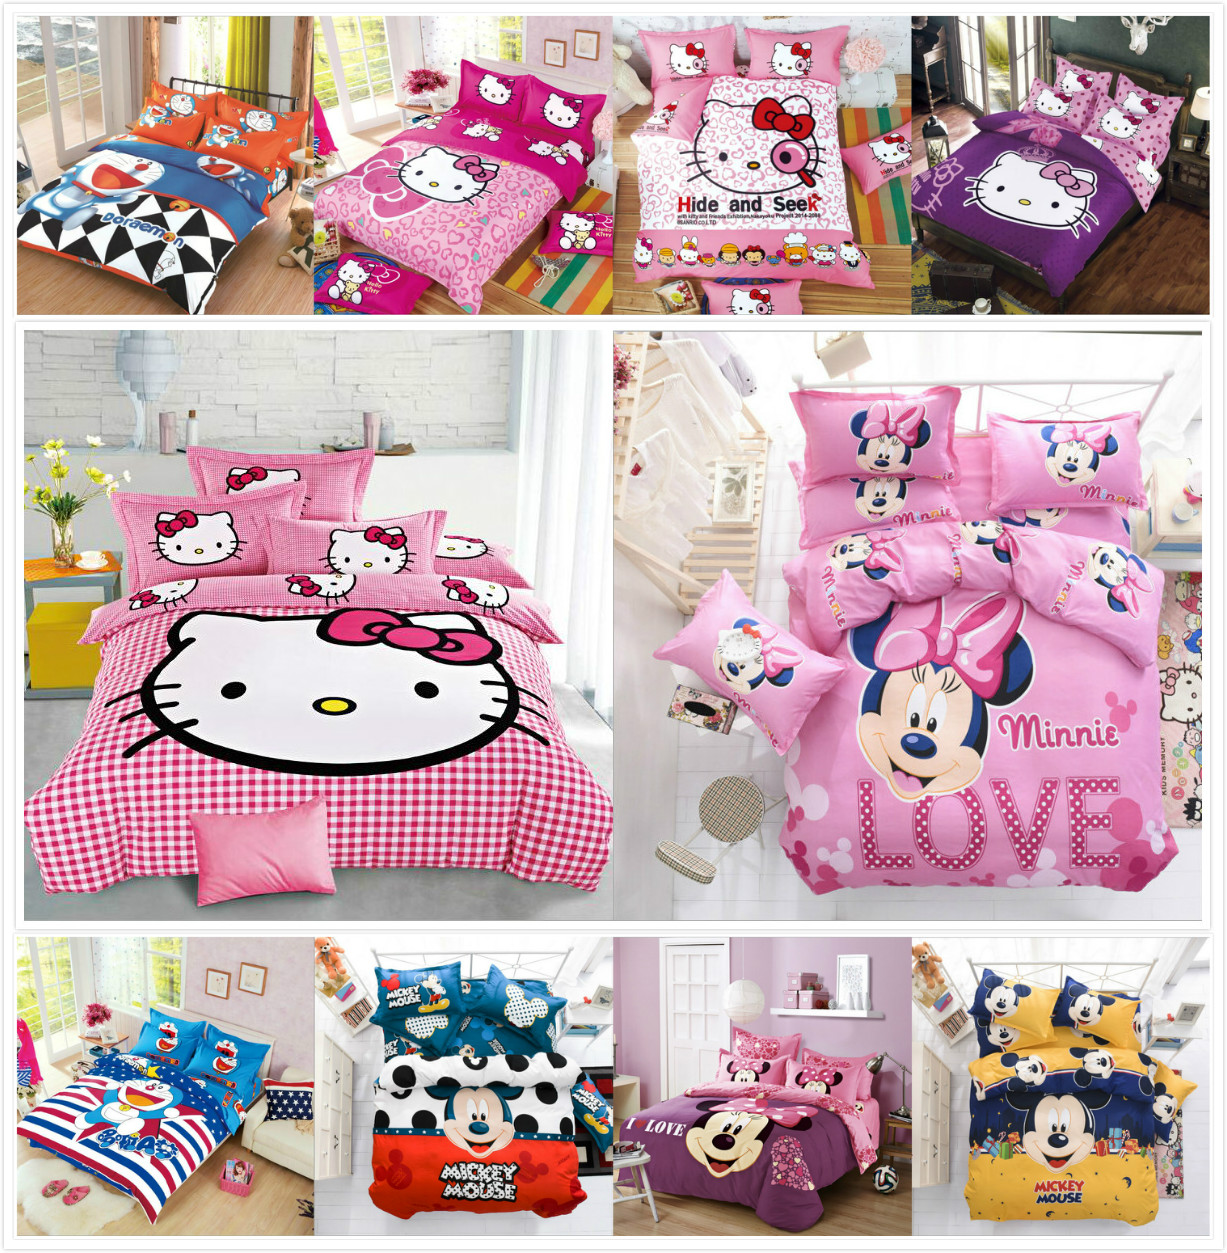 Cute mouse cat Hello Kitty Cartoon Creativity British style 4pcs/3pcs Duvet Cover Sets Soft Polyester Bed Linen Flat Bed Sheet